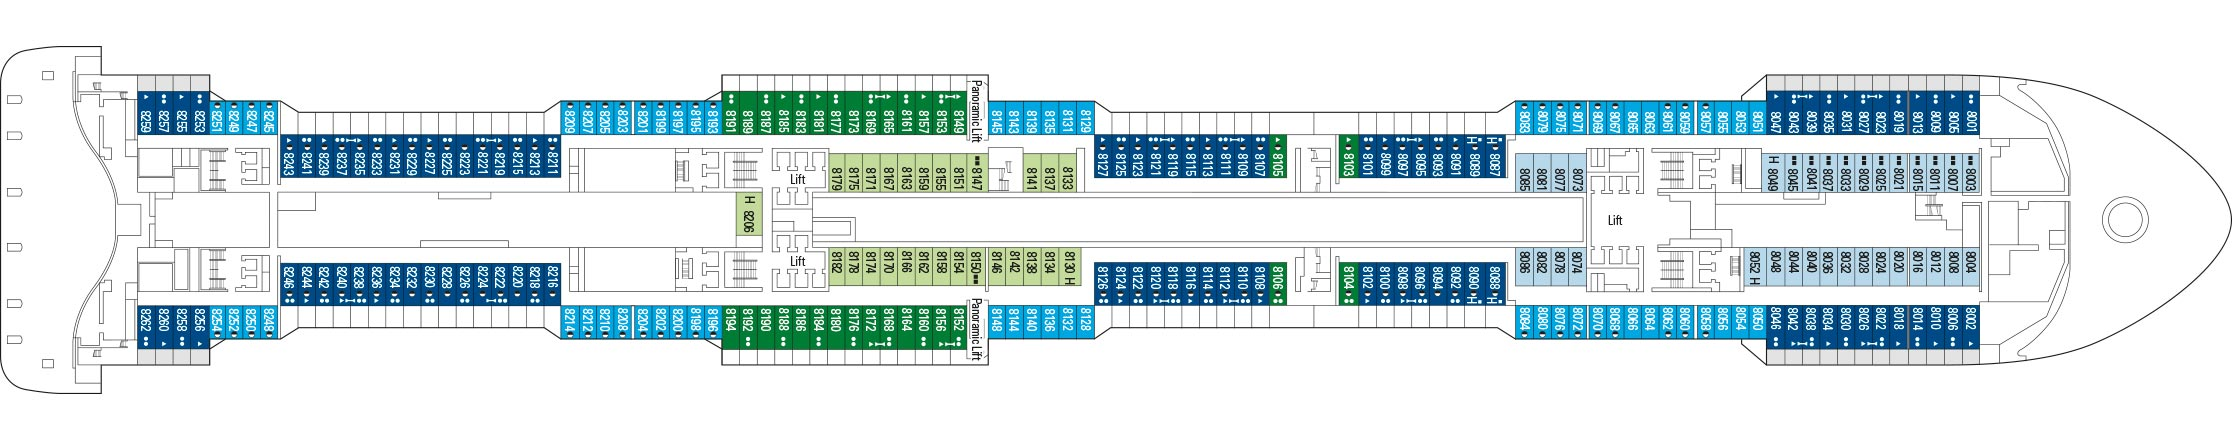 MSC Virtuosa, Deckplan | MSC Cruises